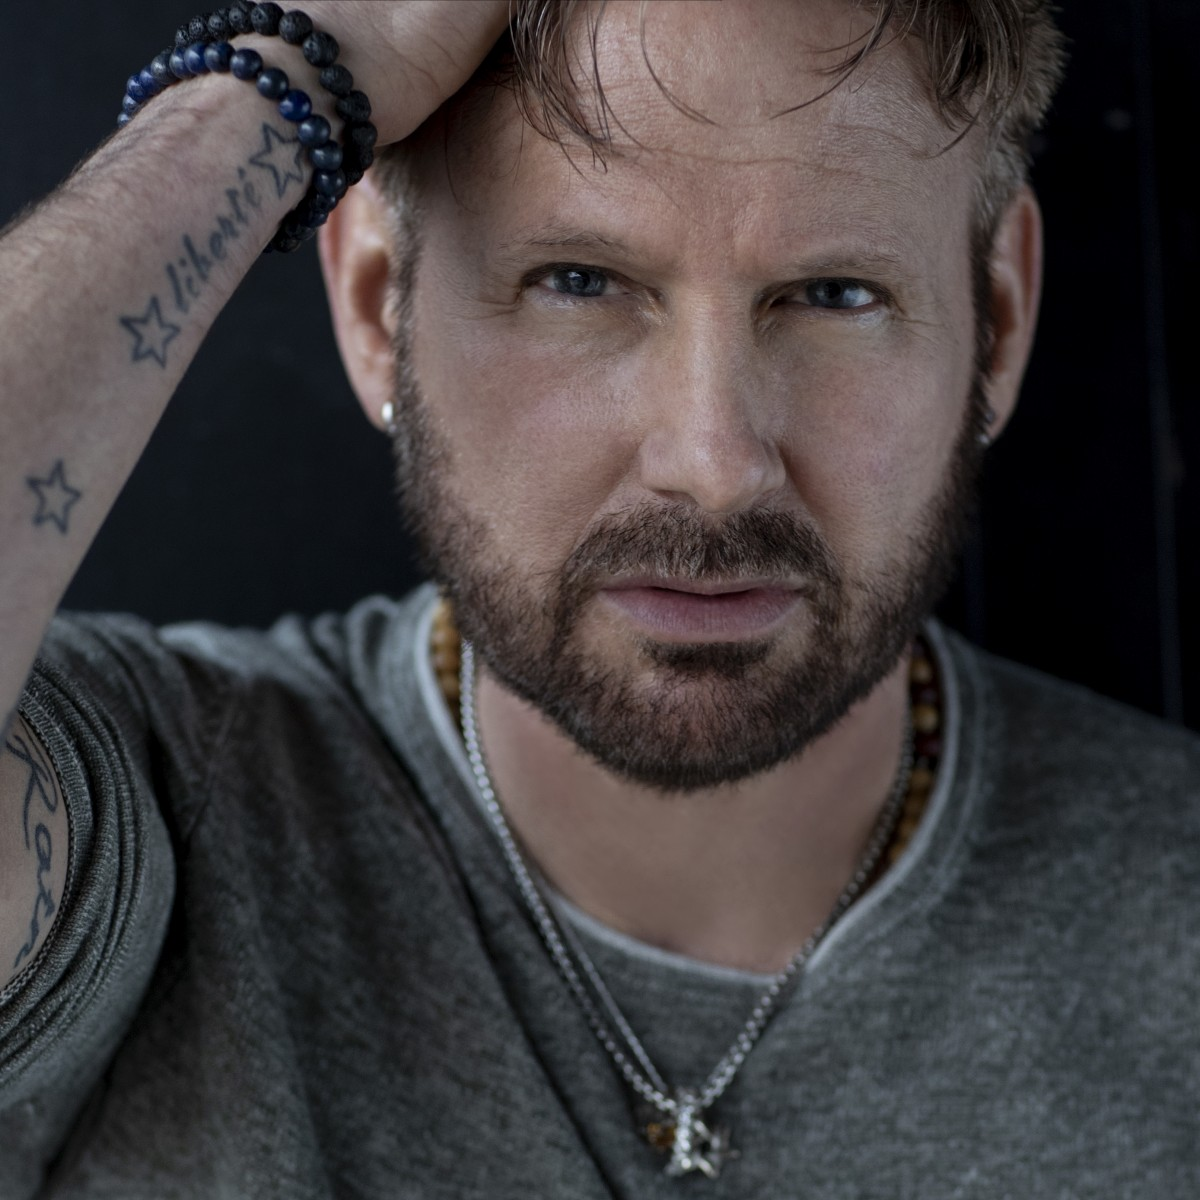 Corey Hart To Be Inducted In To The Canadian Music Hall Of Fame At The 2019 Juno Awards / New Music Available May 3, 2019